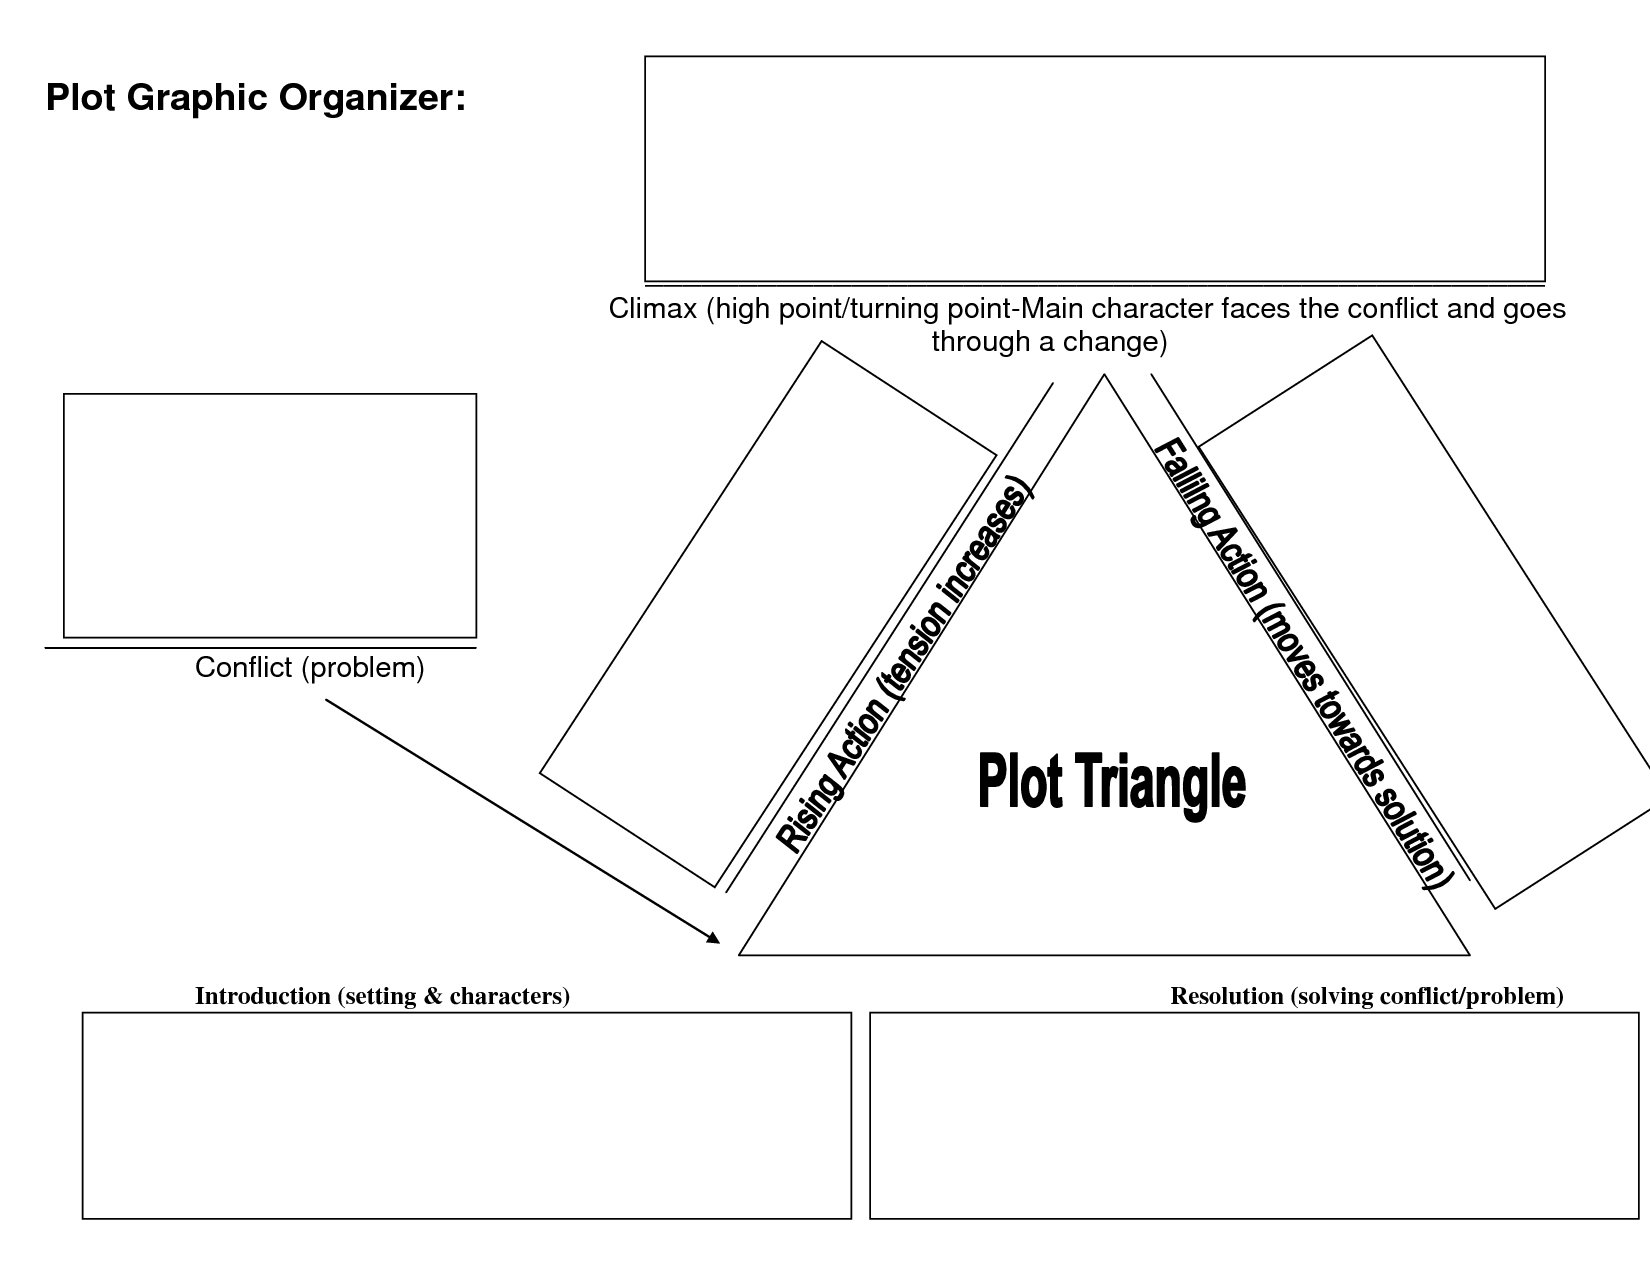 Elements Of A Plot Graphic Organizer Writing Graphic